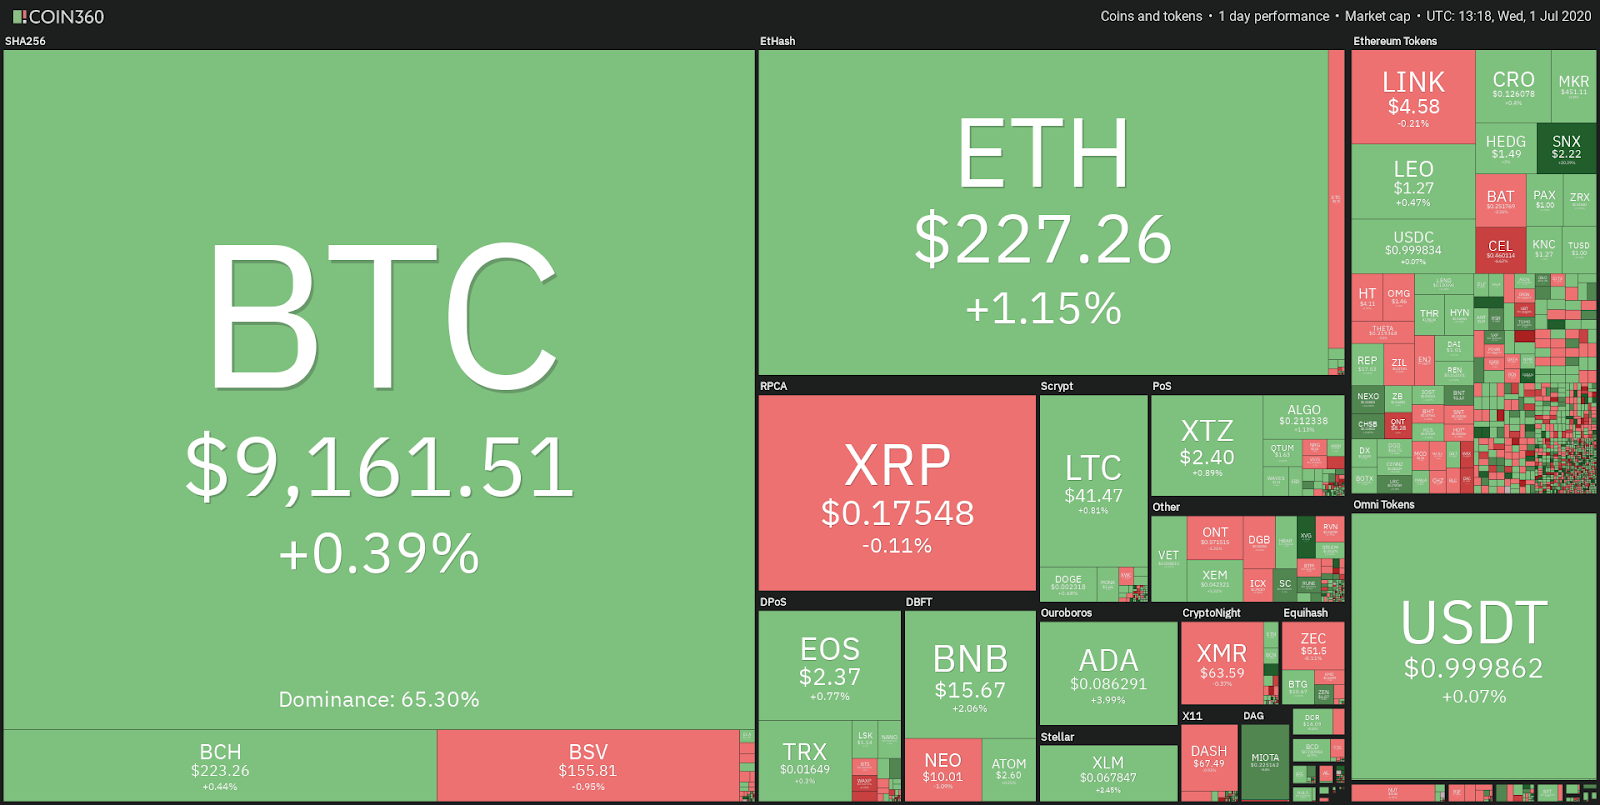 Daily crypto market performance. Source: Coin360.com